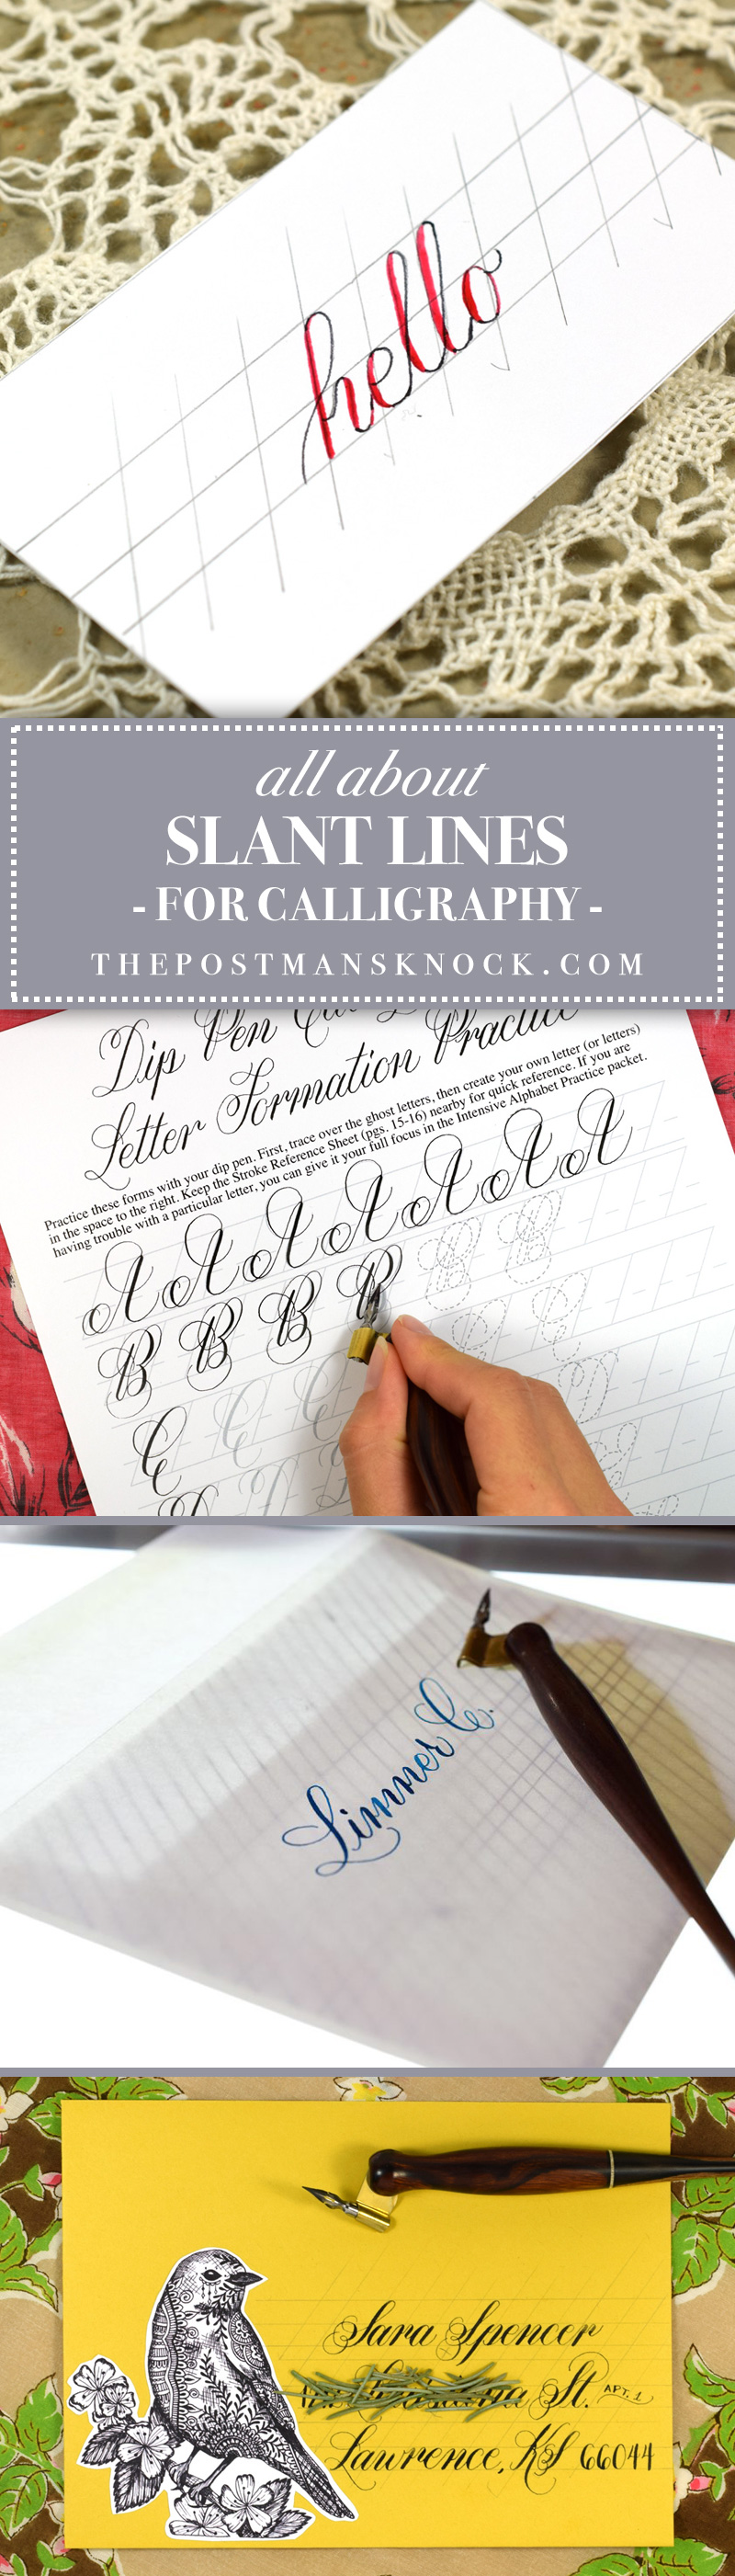 About Calligraphy Slant Lines | The Postman's Knock